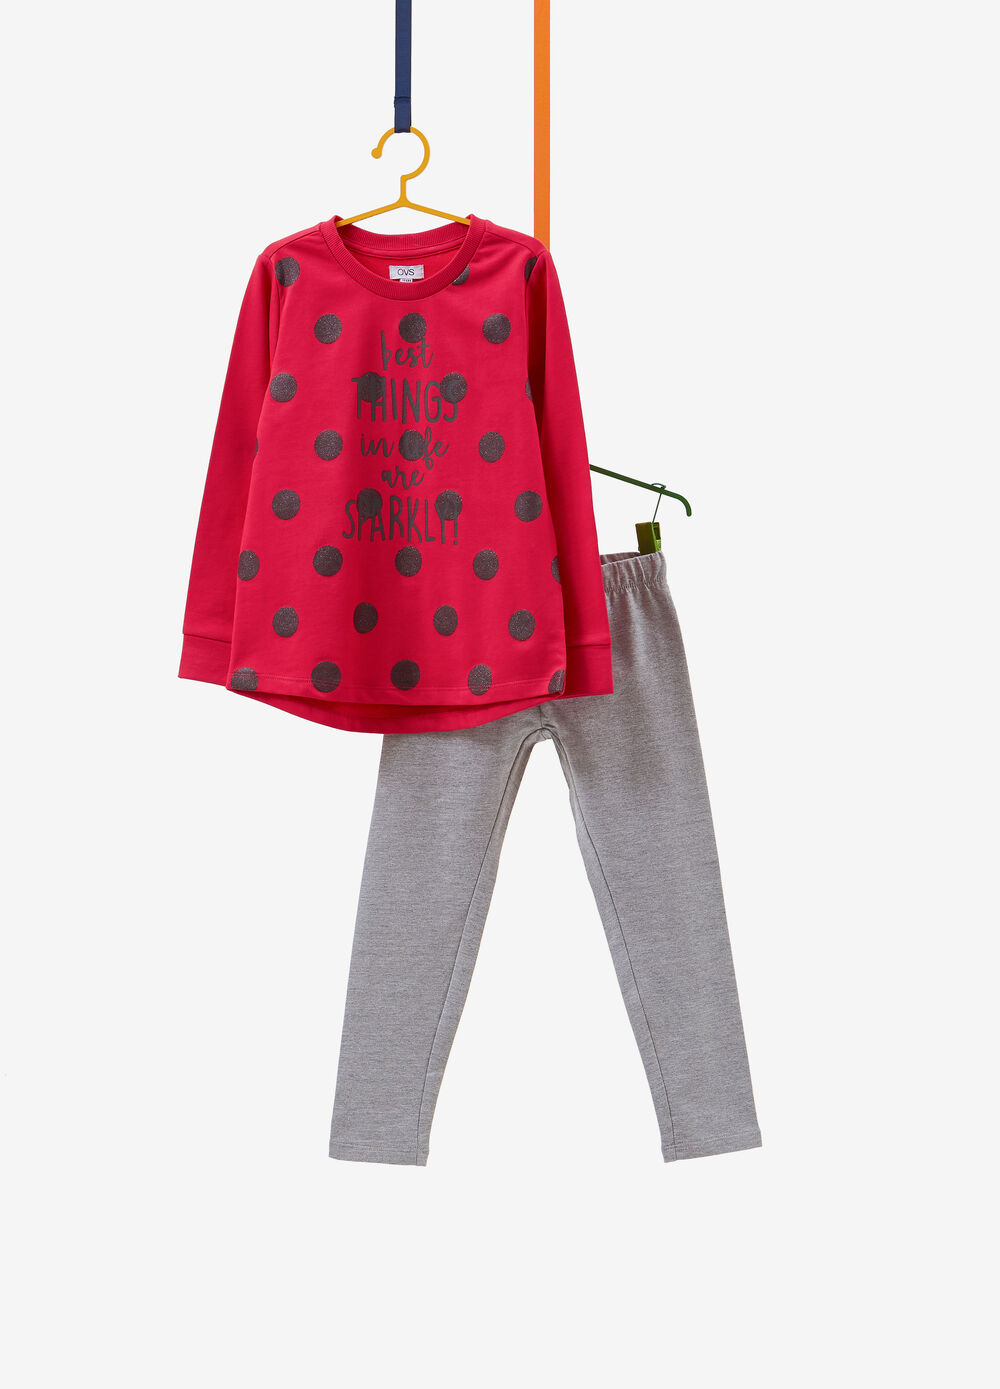 Tracksuit in 100% cotton with glitter polka dot print